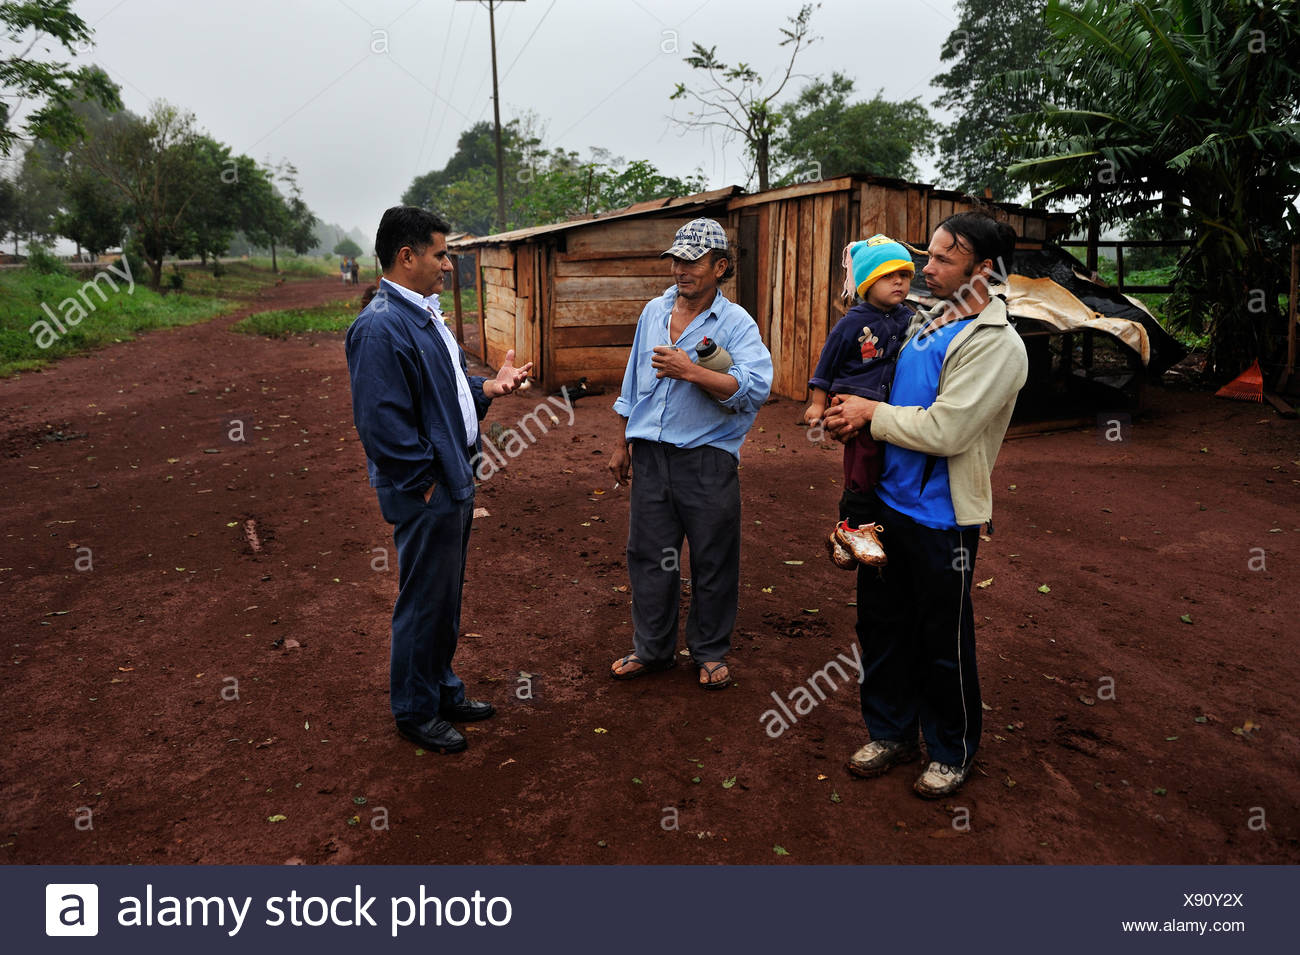 Human rights activists talking to smallholders who live in makeshift huts by the roadside, the farmers were forced off their - Stock Image